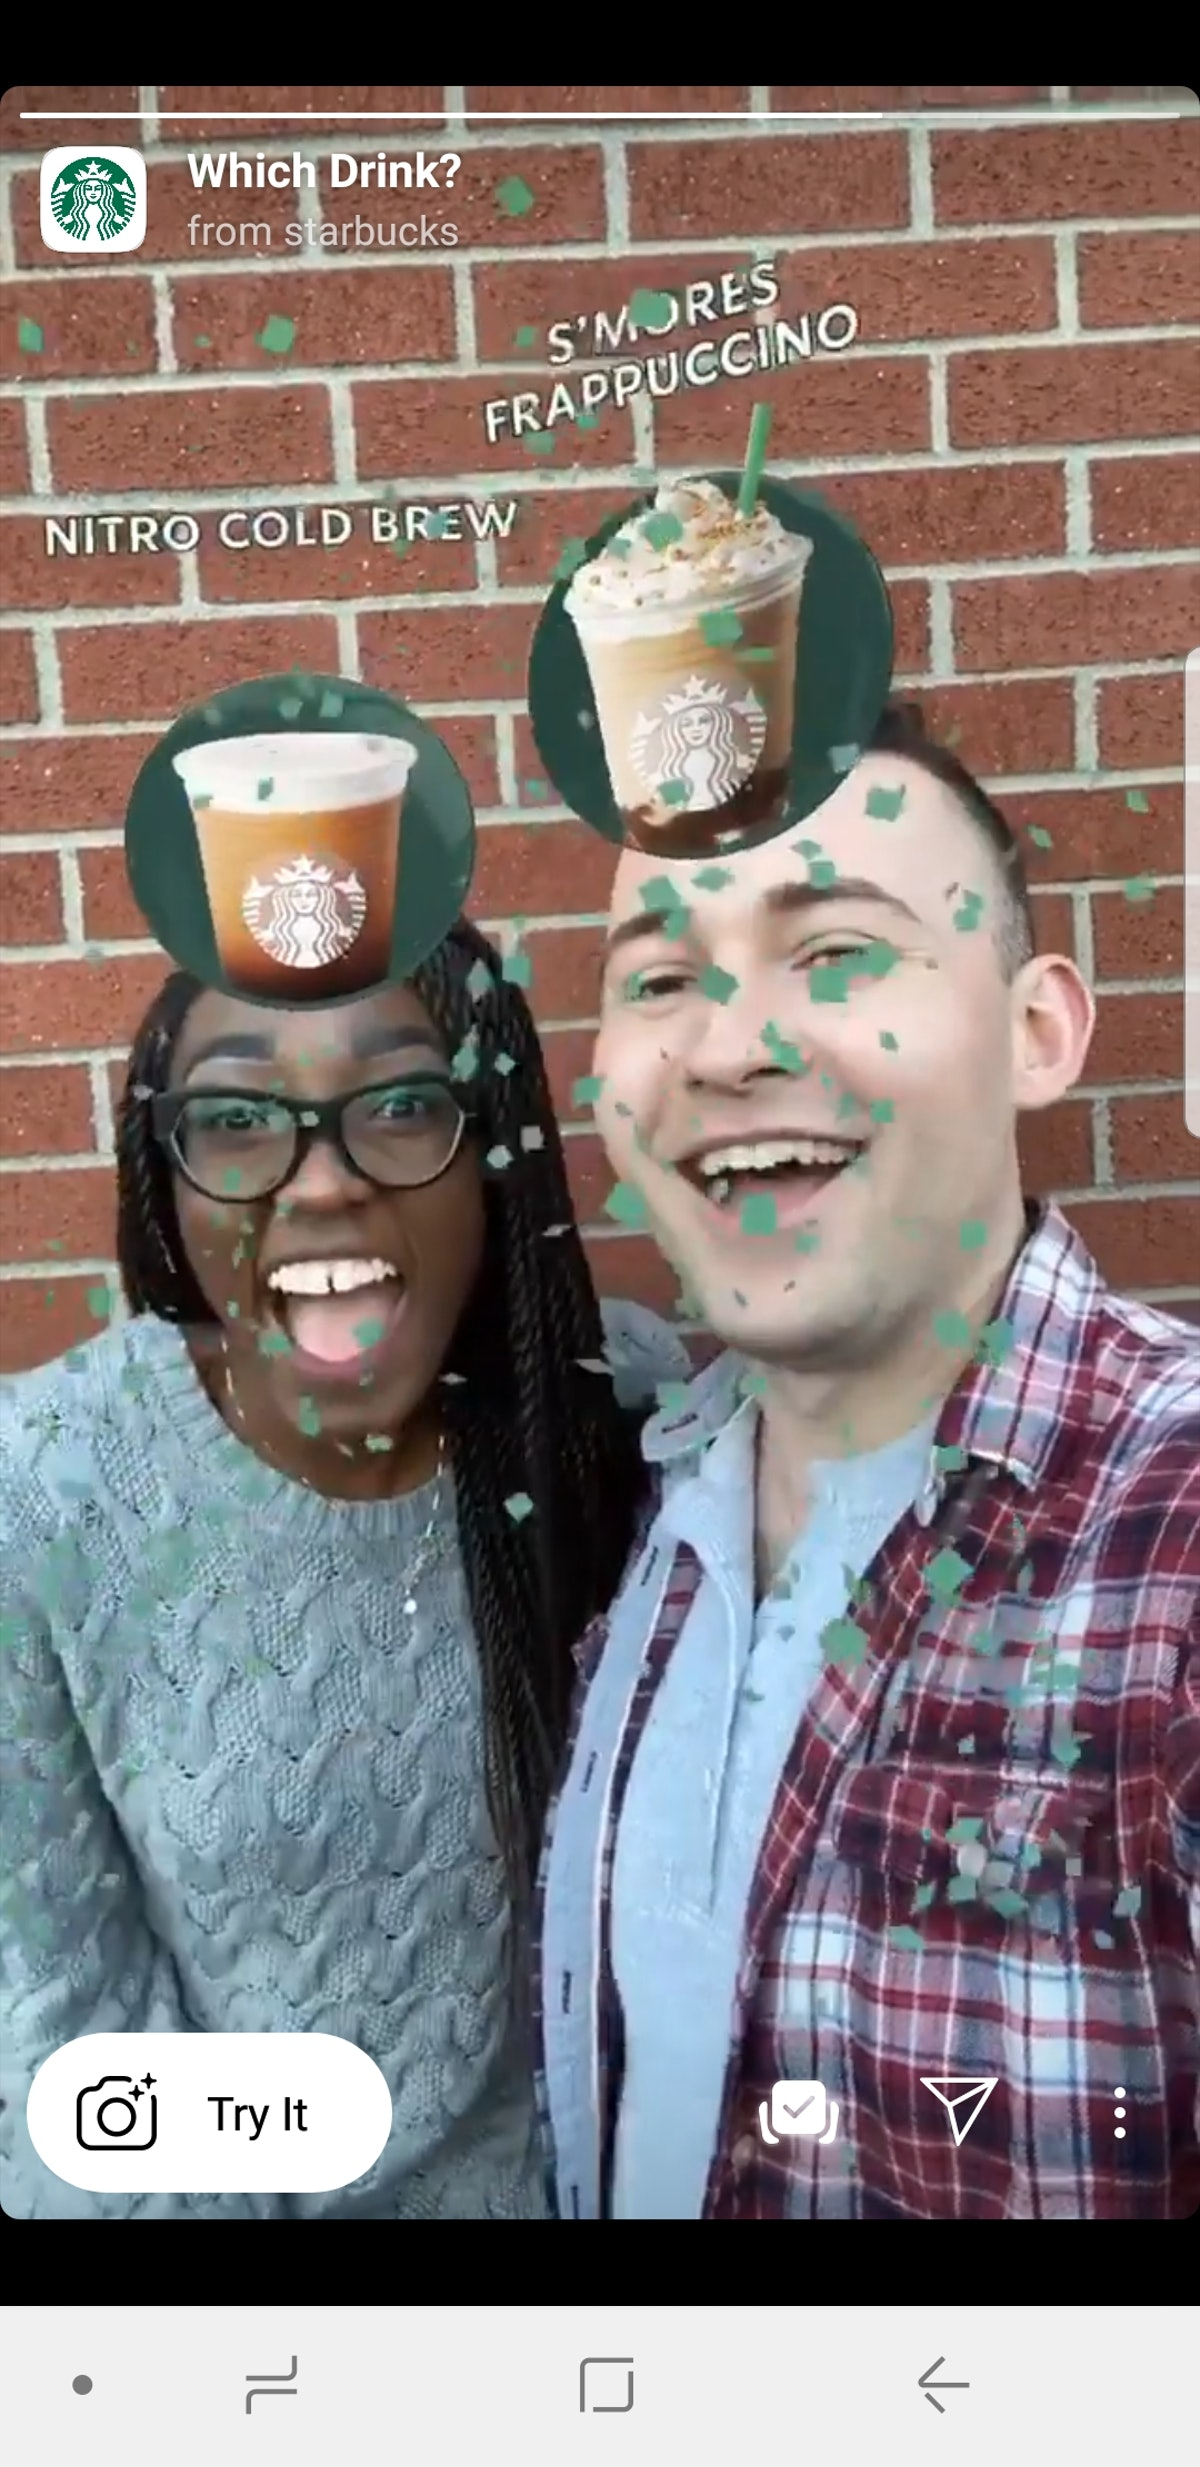 Find out your Starbucks drink with the Starbucks Instagram Story Filter.